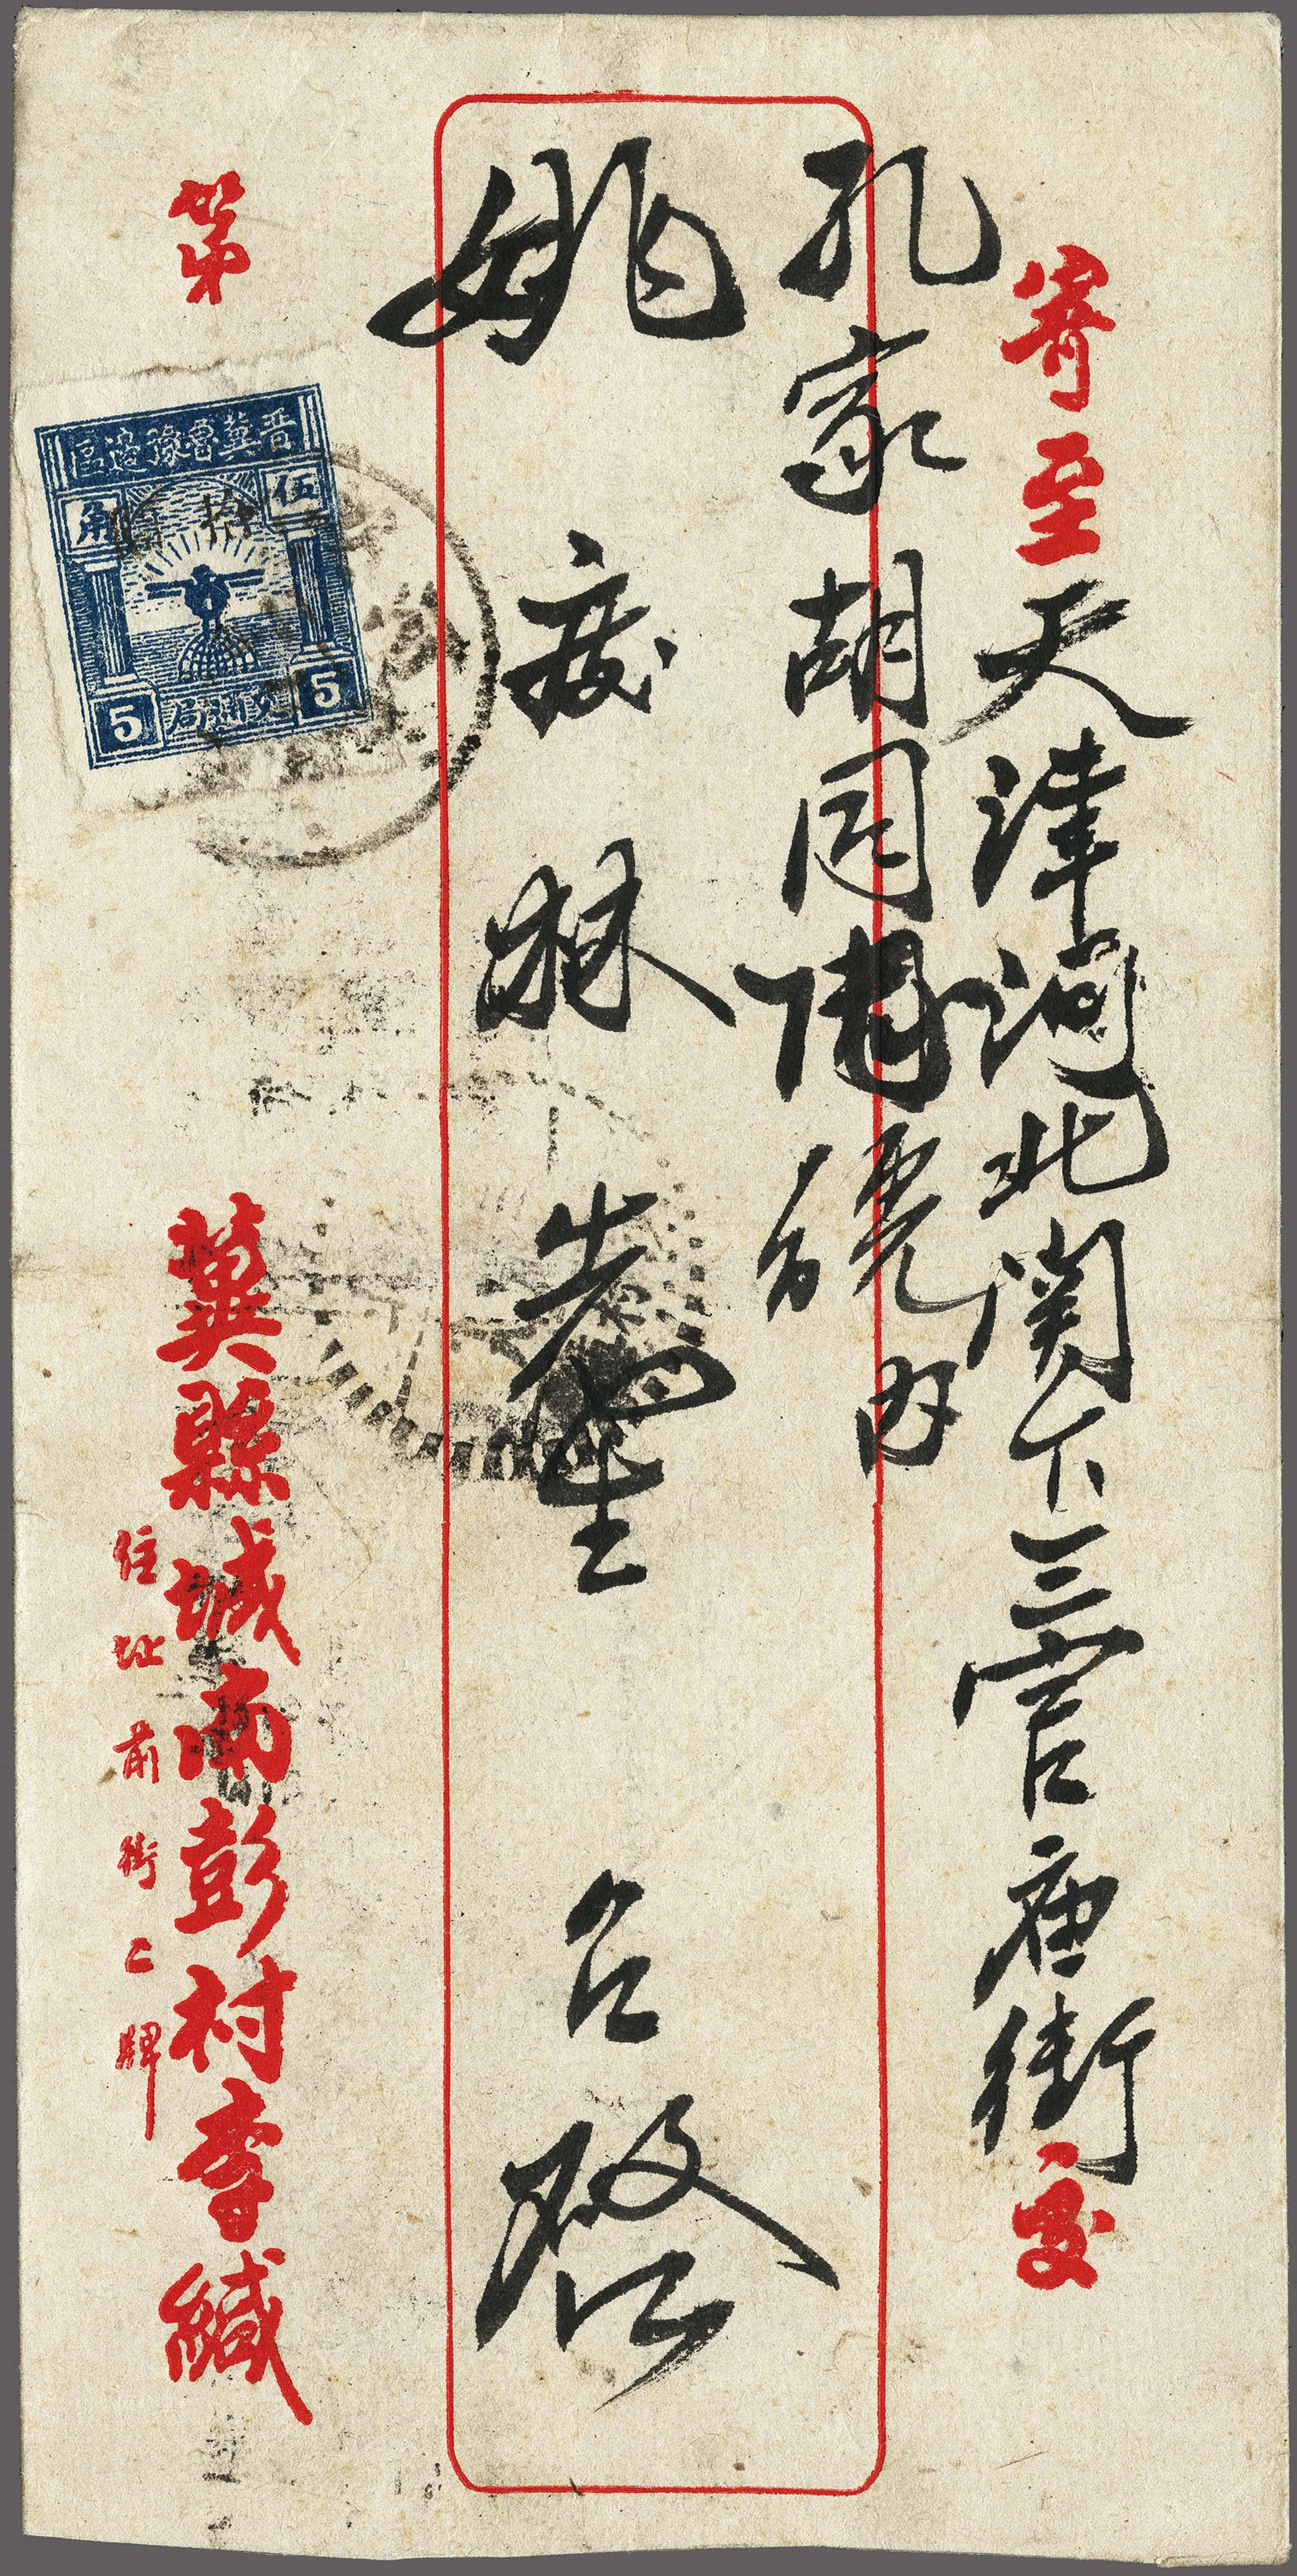 Lot 60 - China China Northern Provinces -  Corinphila Veilingen Auction 250-253 - Day 1 - Foreign countries